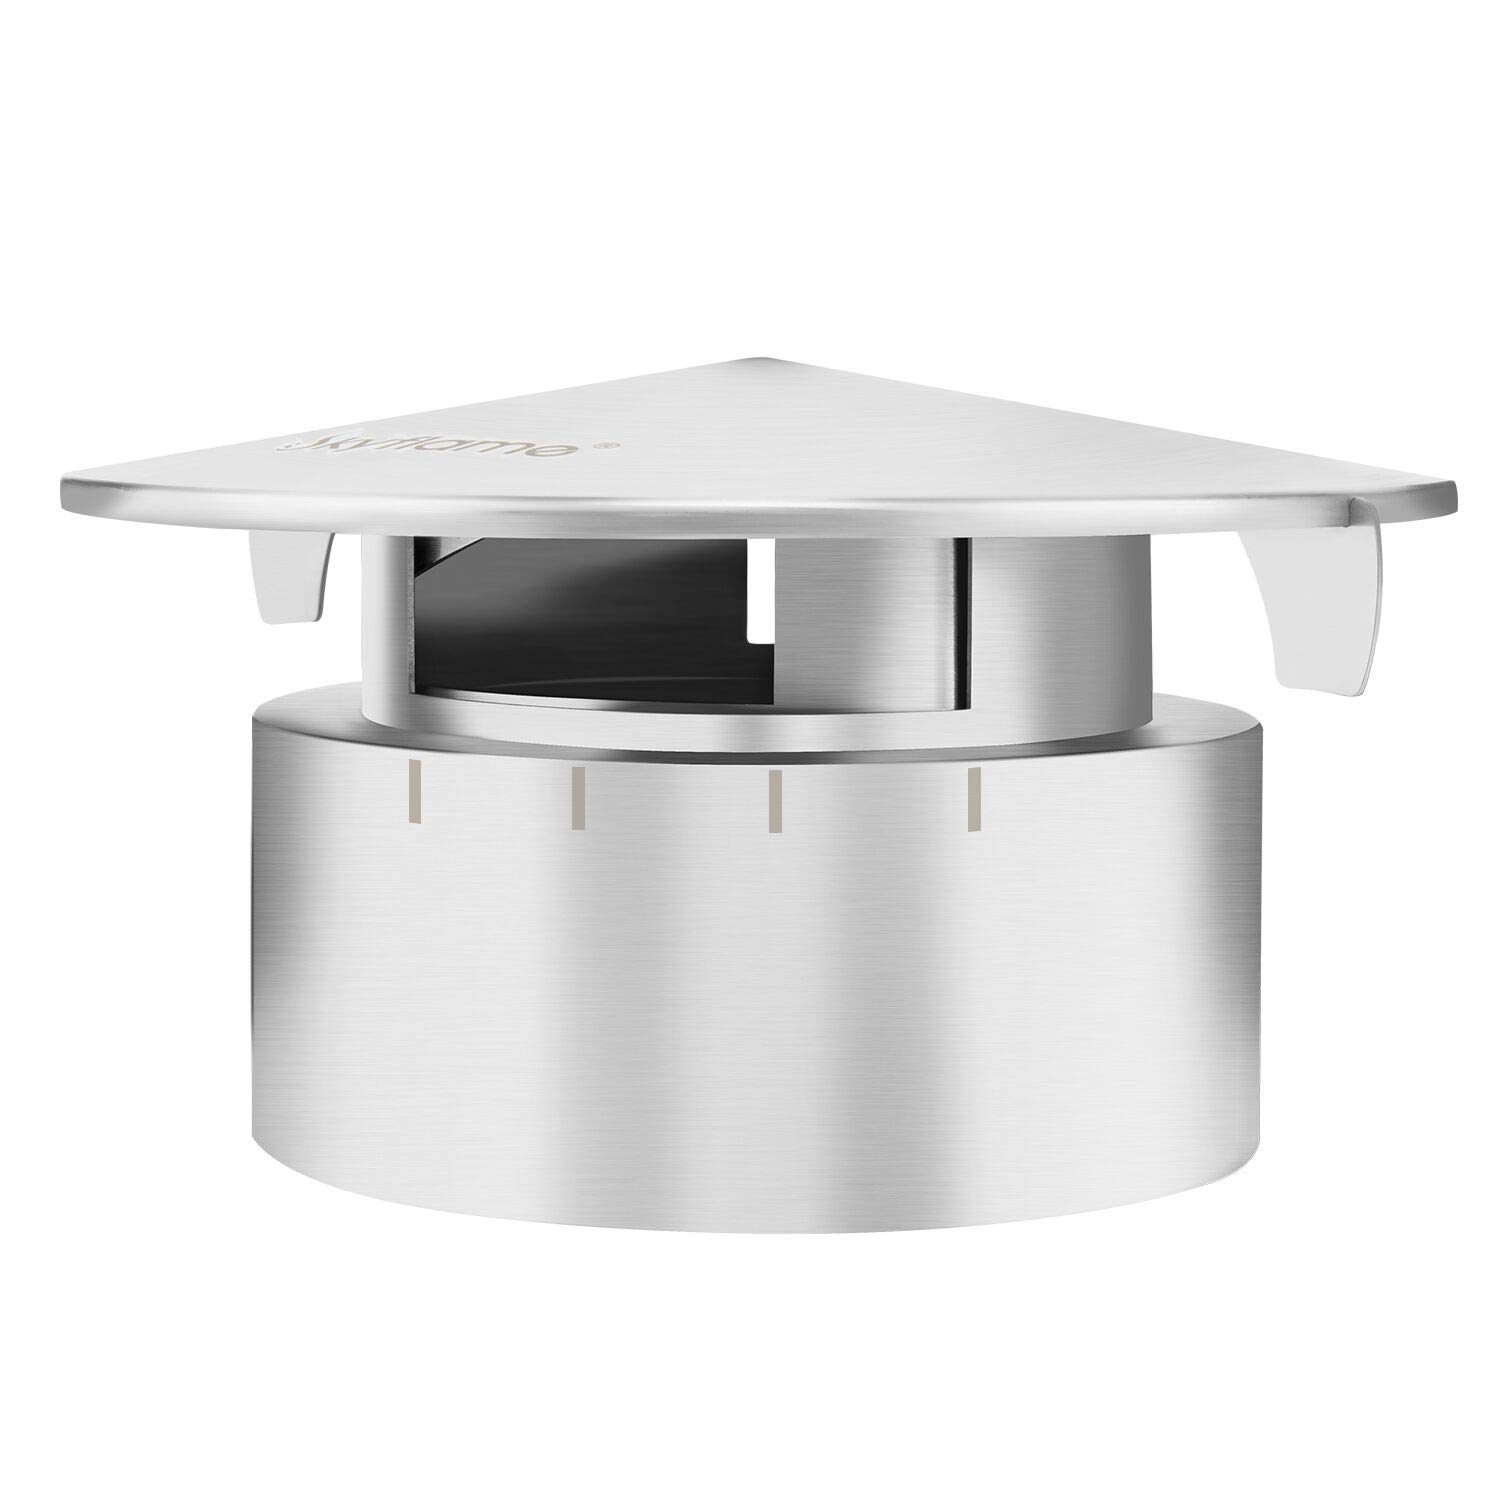 Skyflame Stainless Steel Grill Chimney Top Vent Cap Replacement for Medium Large and XLarge Size Big Green Egg by Skyflame